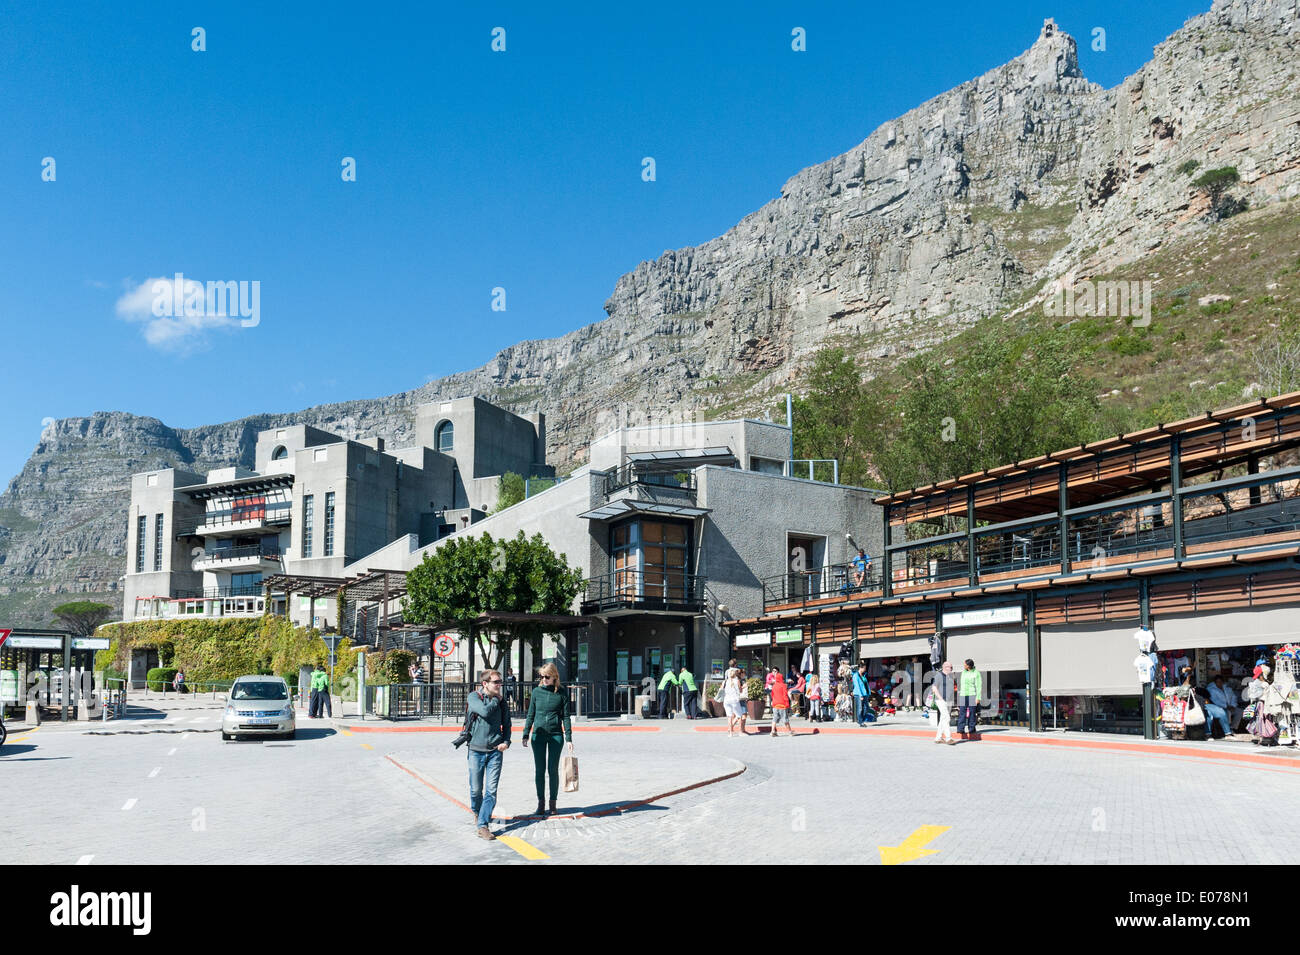 Tourists at cableway station with Table Mountain in the background, Cape Town, South Africa - Stock Image